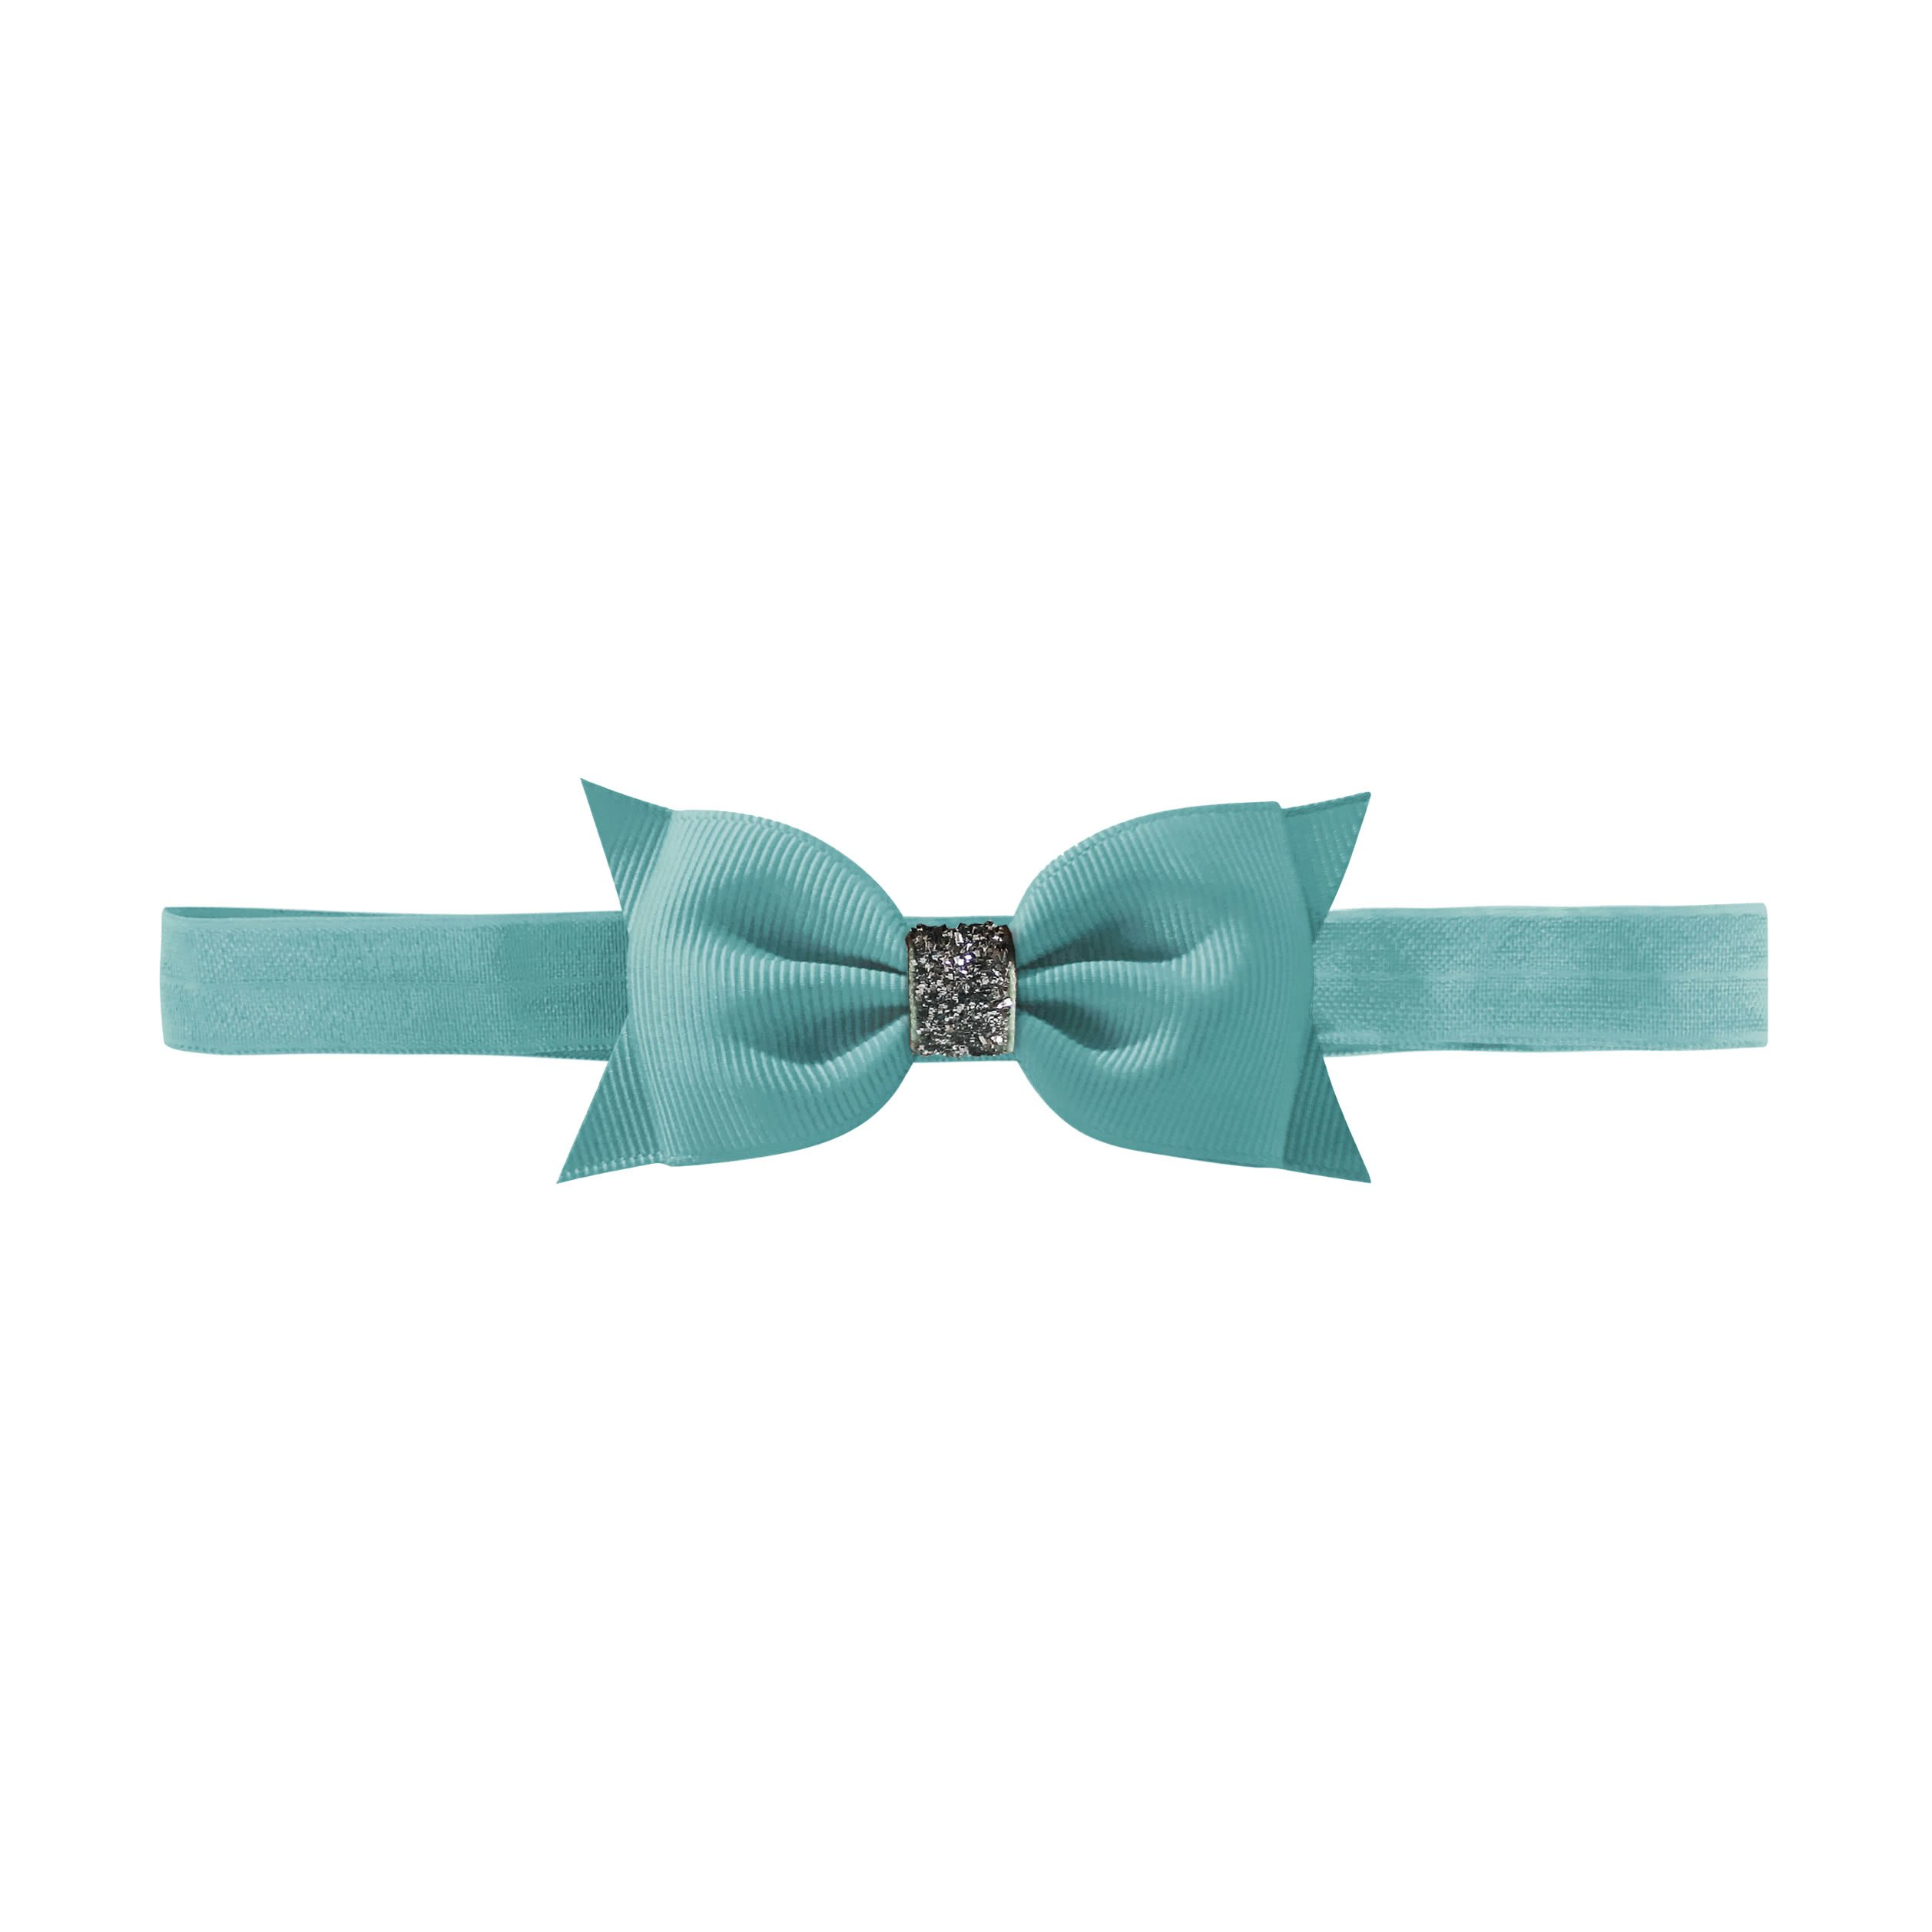 Image of   Double Bowtie bow - elastic hairband - nile blue glitter